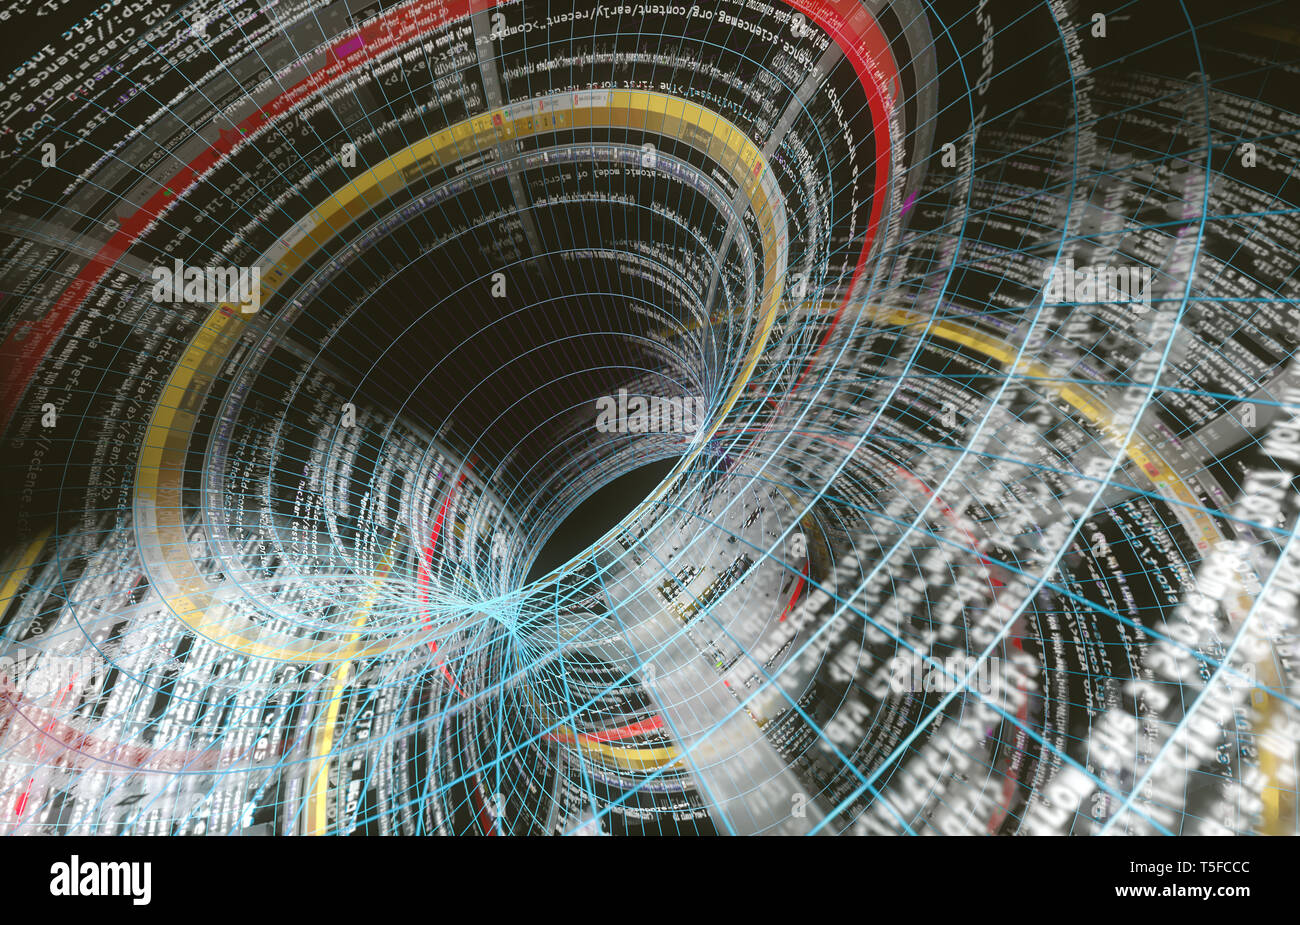 Wallpaper Of Tech Concept Pattern And Big Data Structurenet And